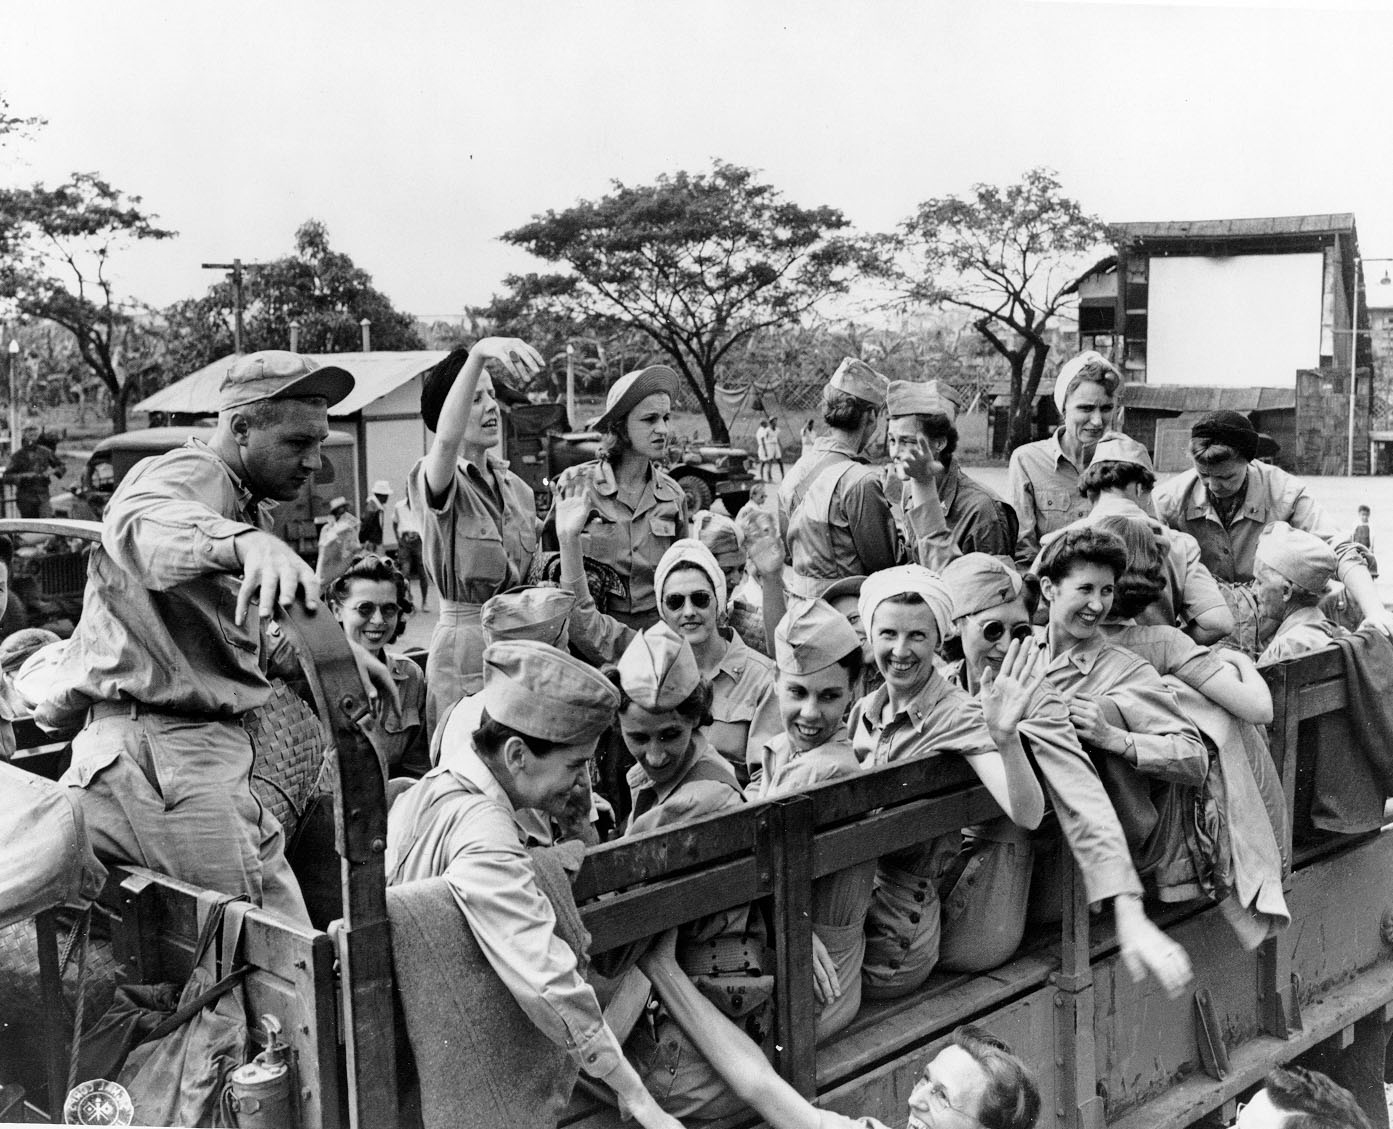 The Angels of Bataan and Corregidor: 70 Years Later